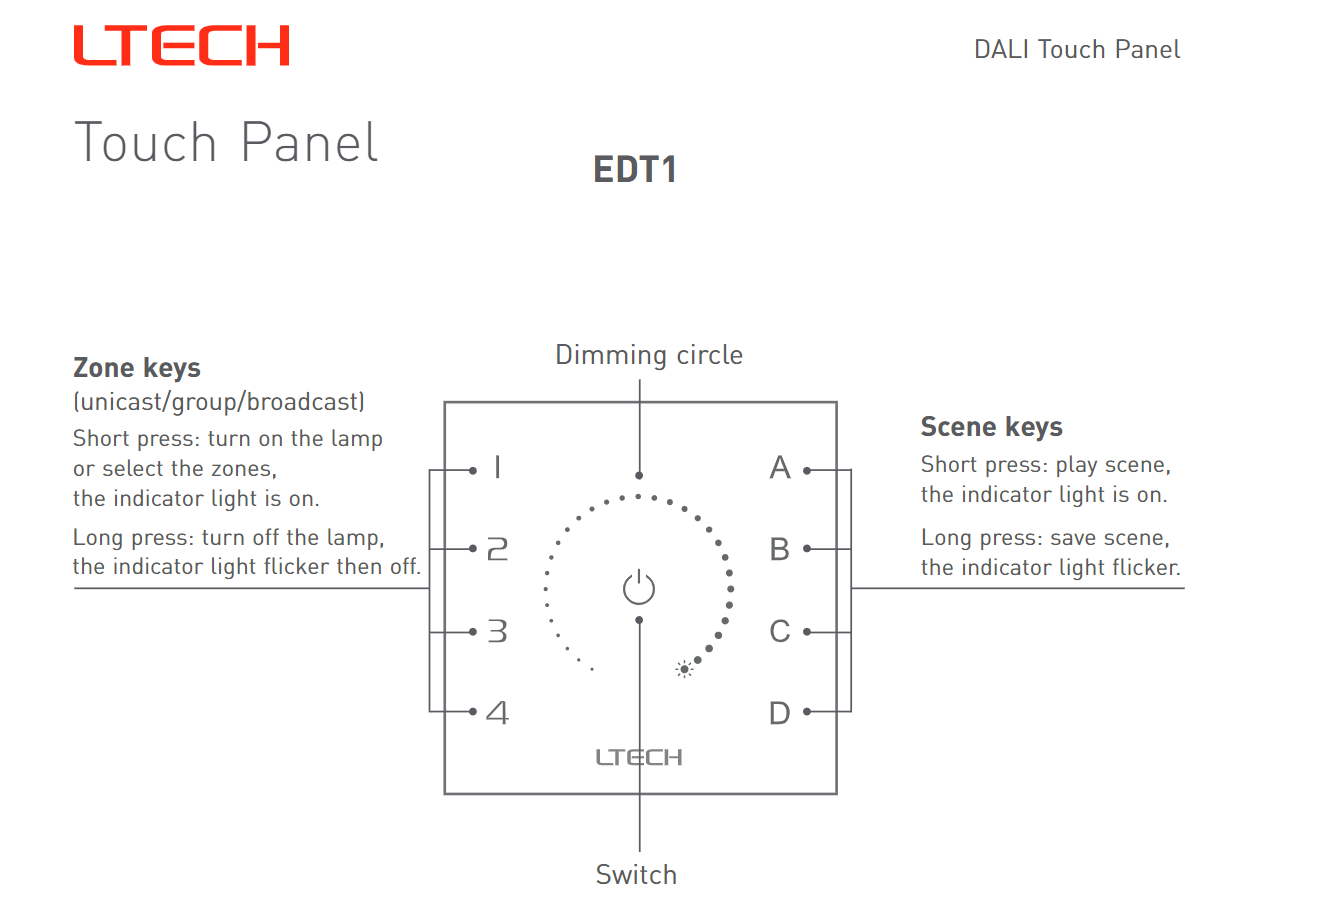 Ltech_EDT2_DALI_CT_Touch_Panel_Master_Led_Controller_6